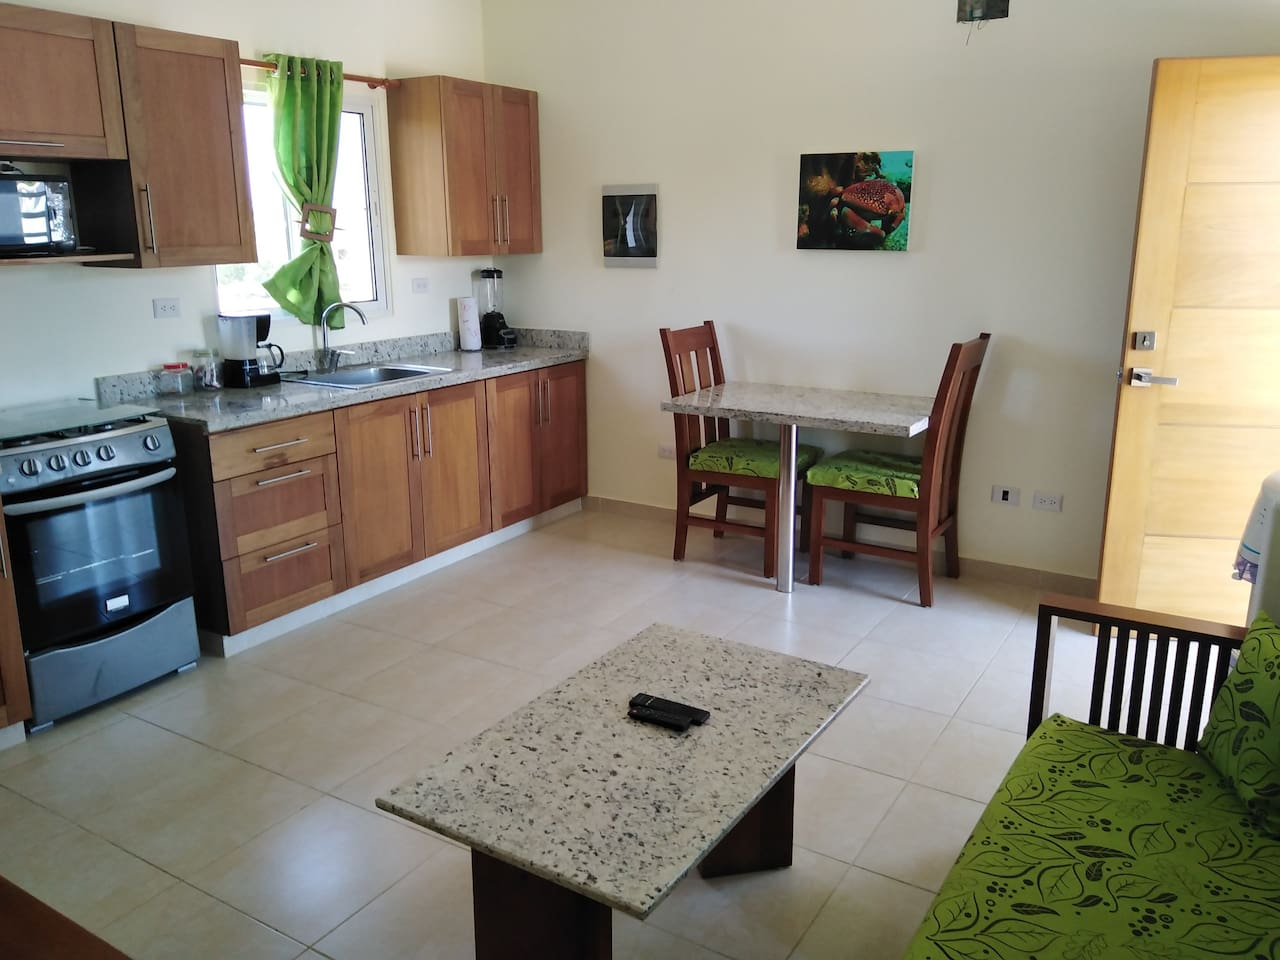 Welcome to Casa De Compai. This one bedroom has a full kitchen with tv, sofa and dining table. All the condos at Casa De Compai have mahogany and granite furniture.